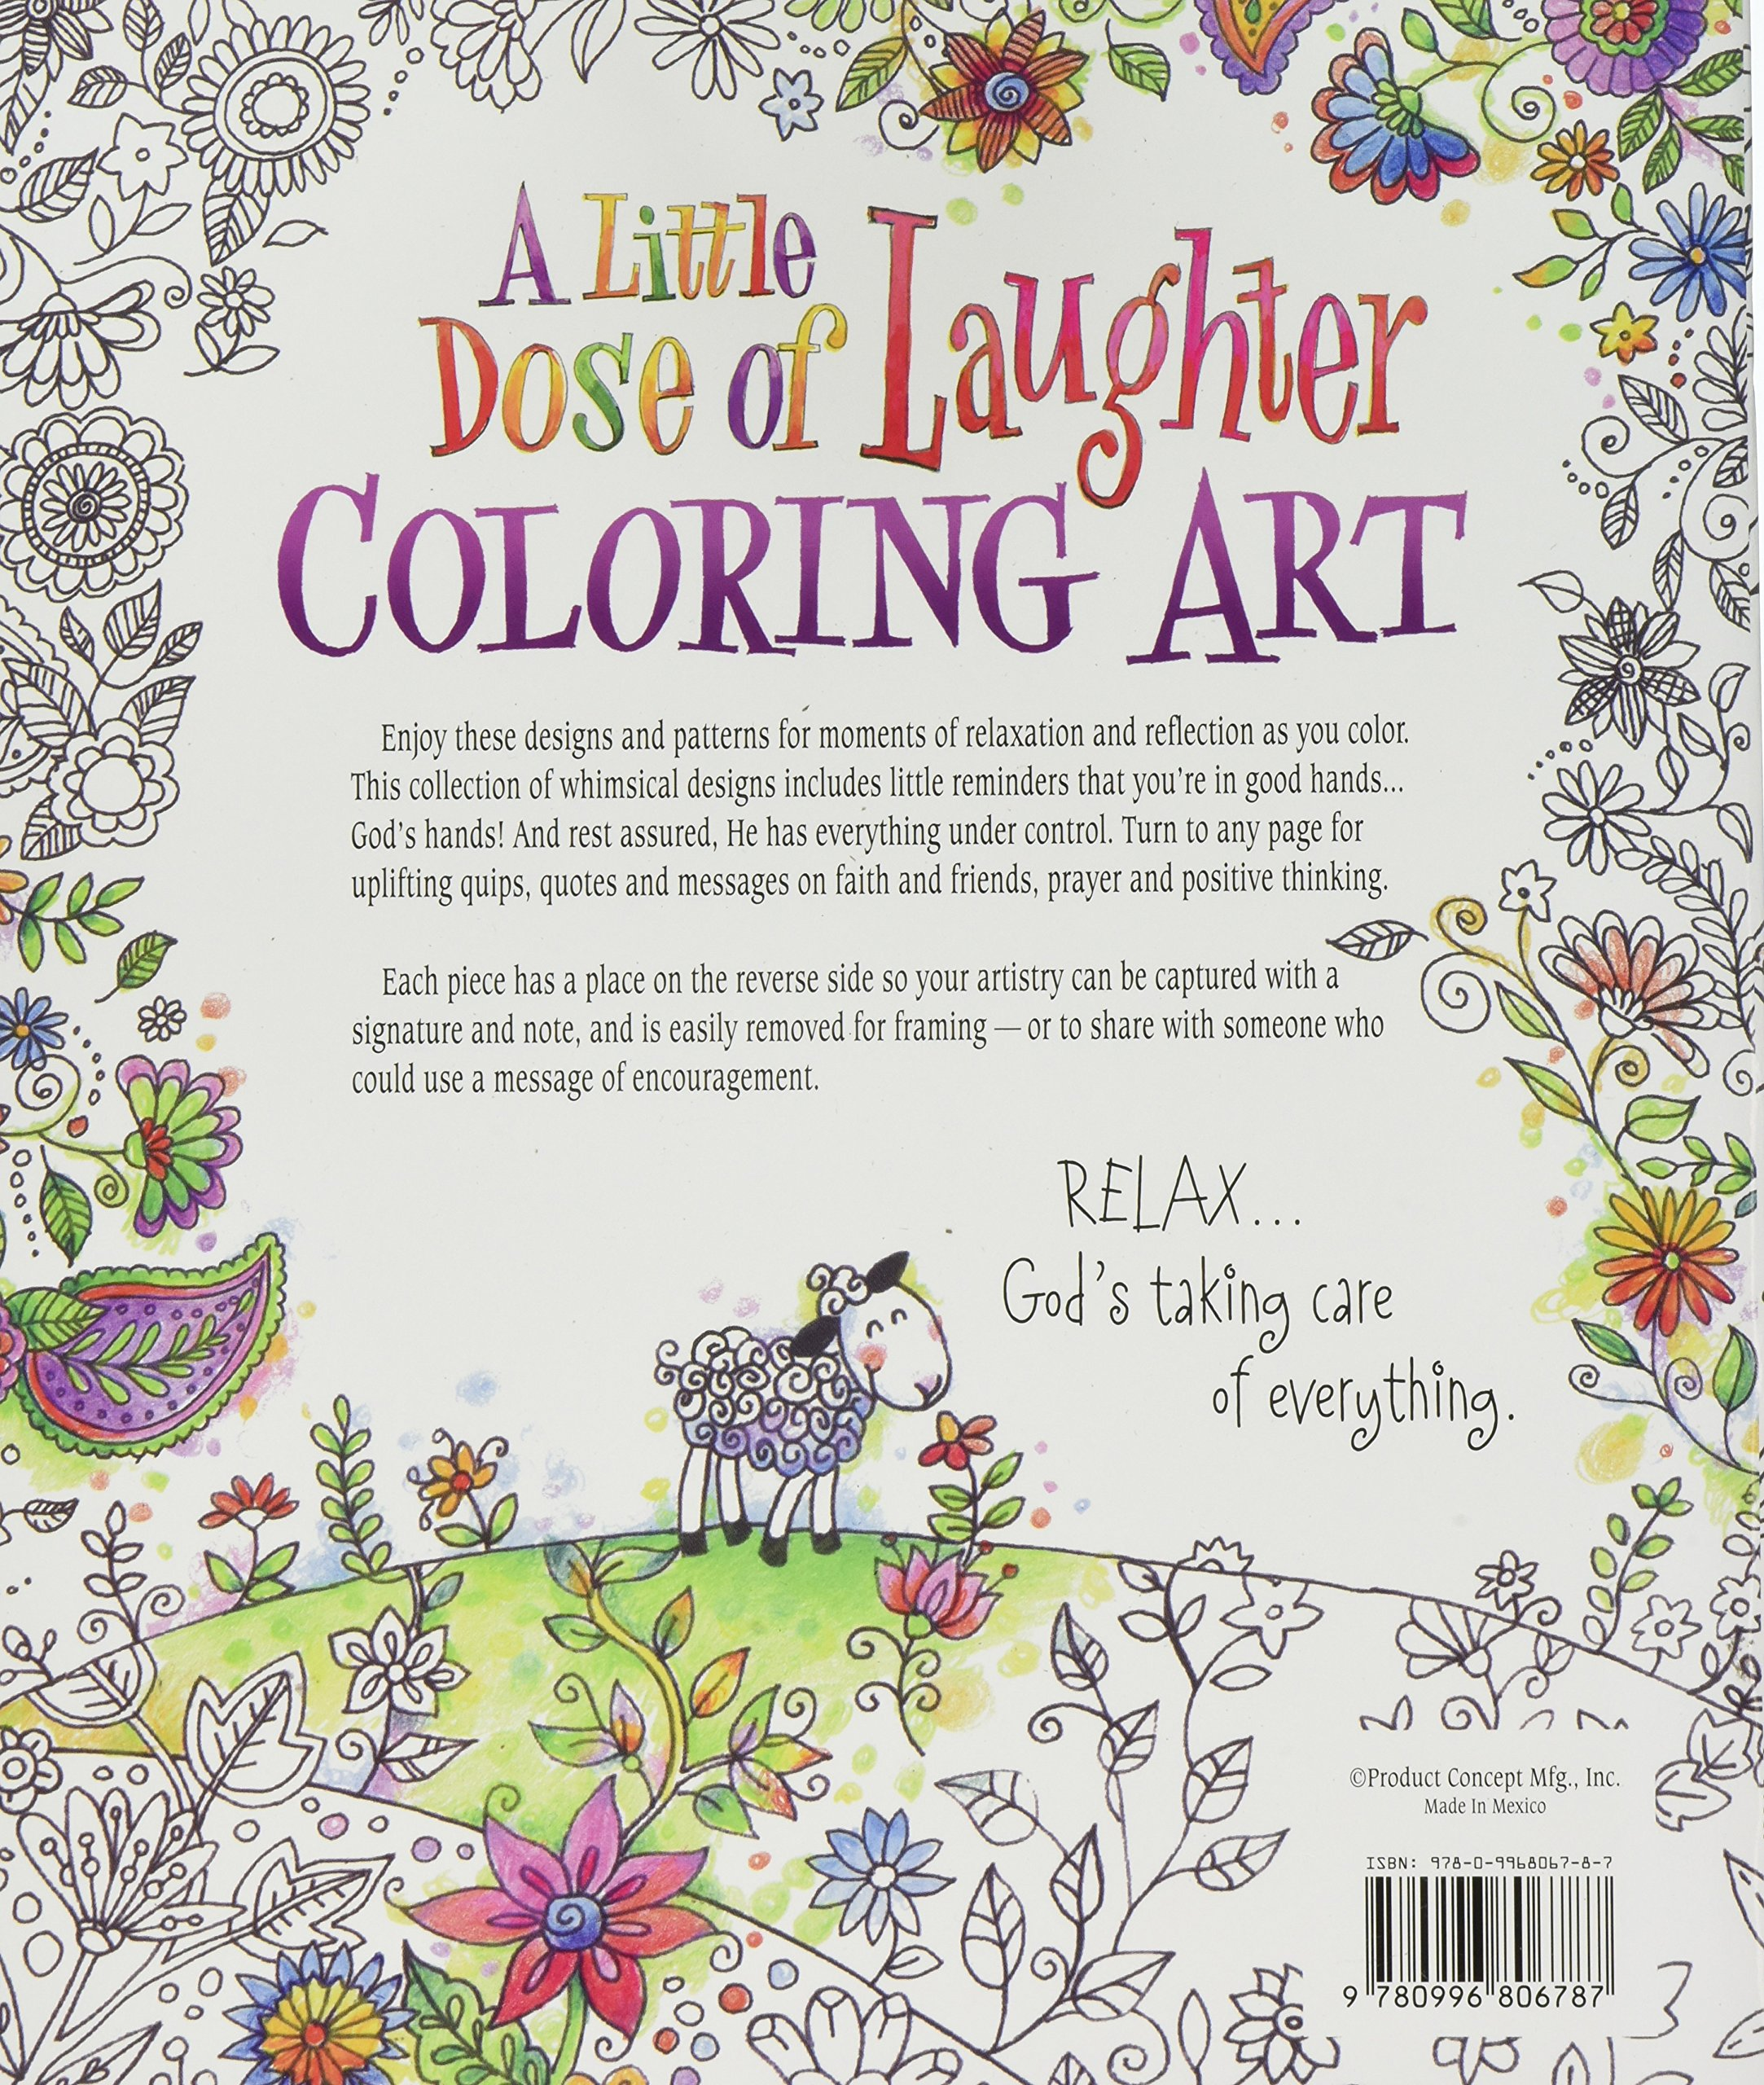 Whimsical designs coloring book - Amazon Com A Little Dose Of Laughter Coloring Art 9780996806787 Inc Product Concept Mfg Books